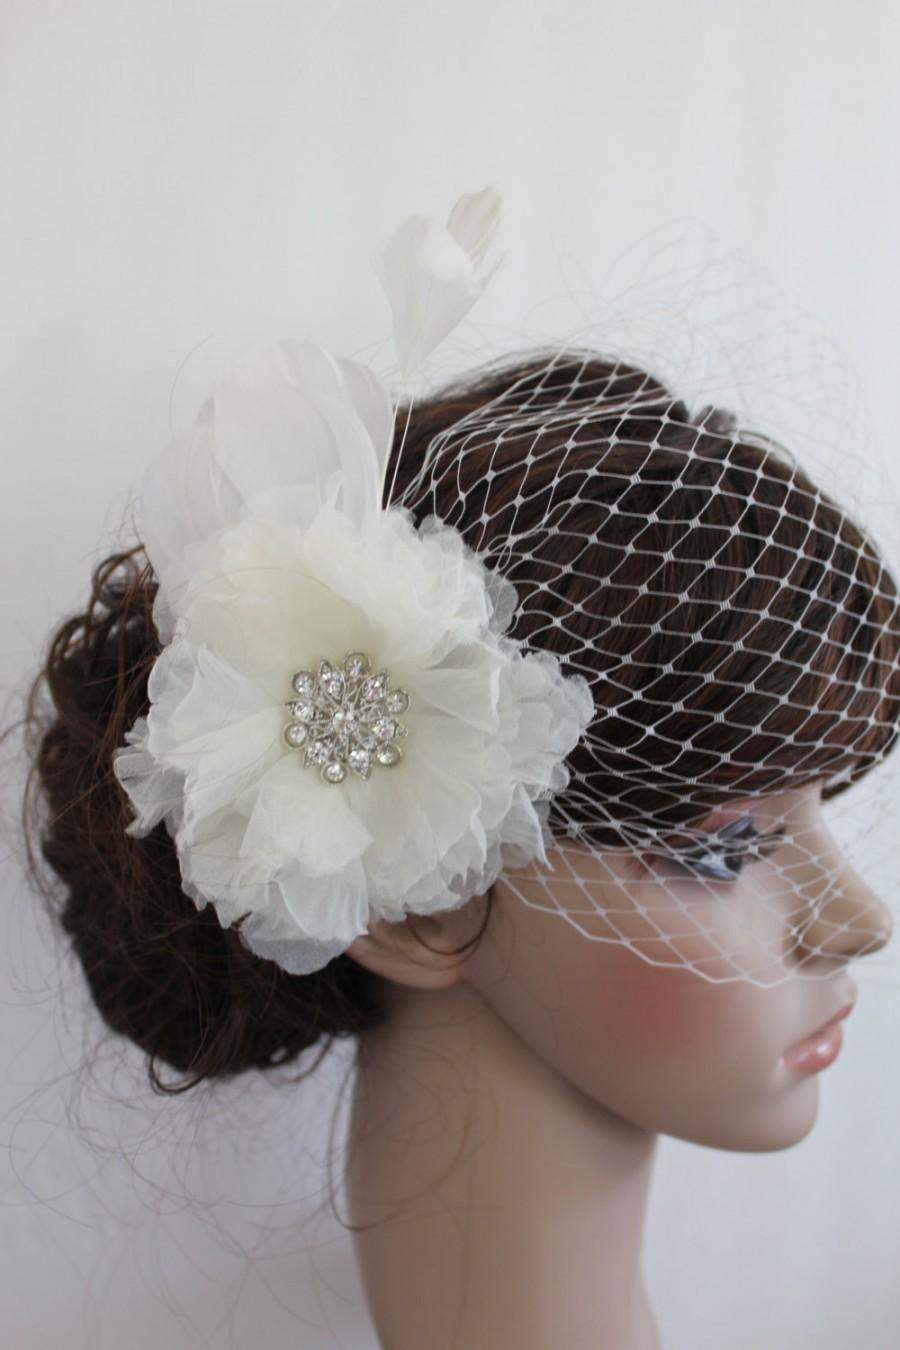 Hochzeit - Wedding accessory veils Bridal birdcage veil Wedding birdcage veil wedding hair comb birdcage bridal Fascinators wedding veils headpieces